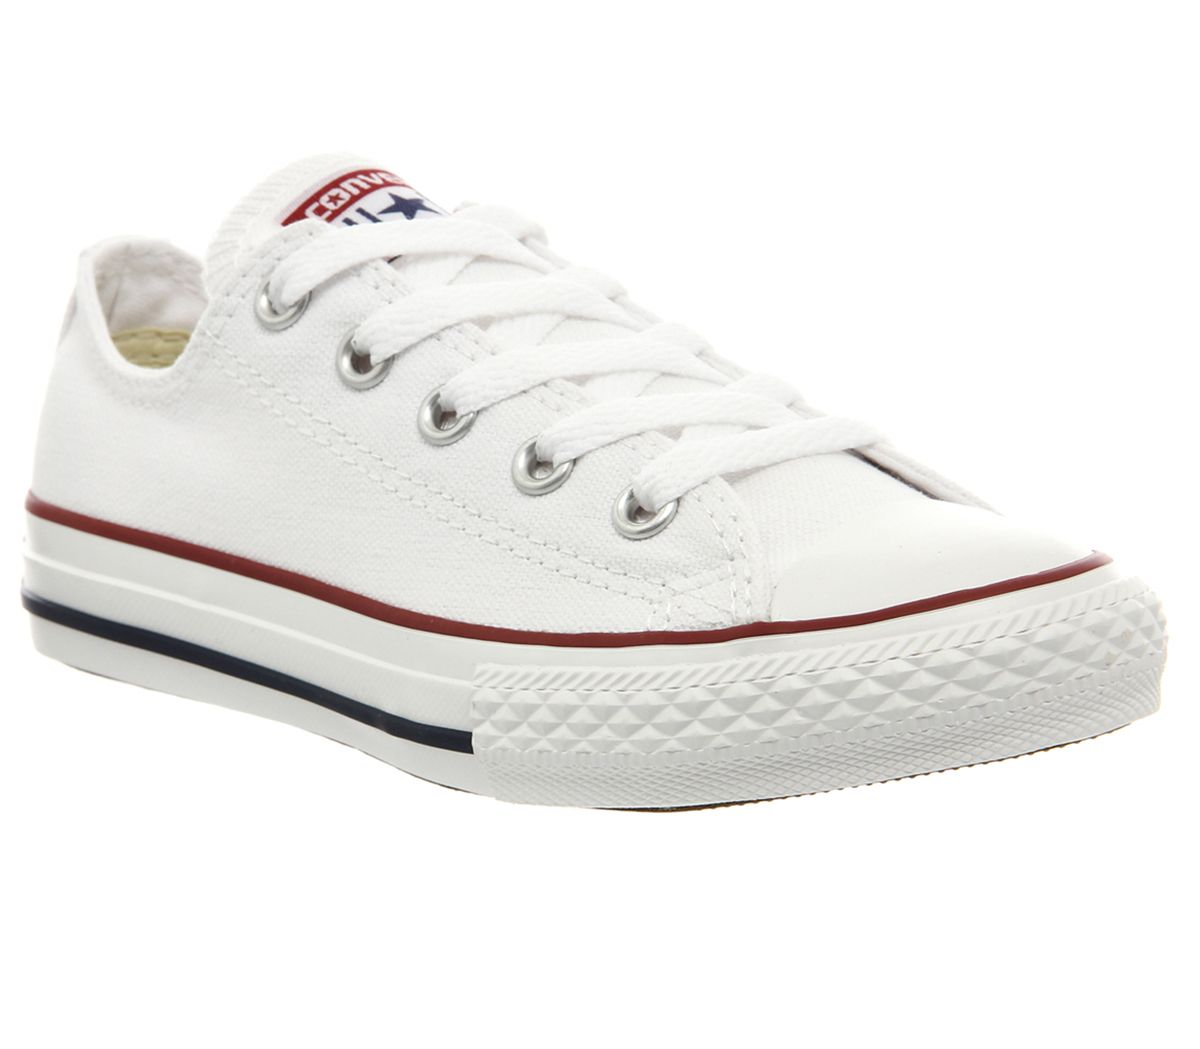 3c9be2c74aae Converse All Star Low Youth Optical White - Unisex